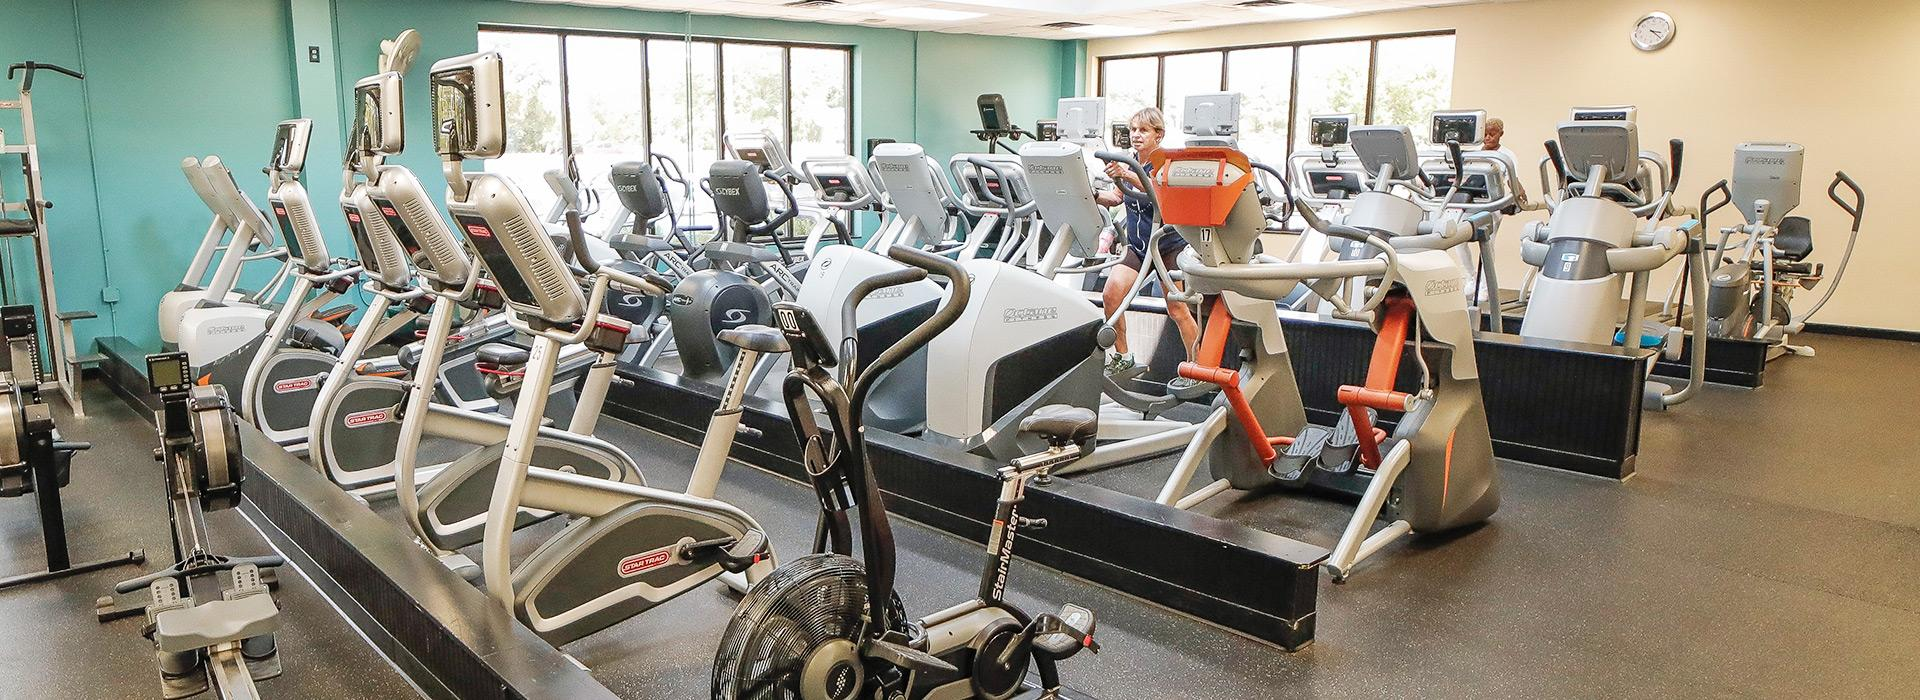 Cardio equipment at the Mt. Trashmore Family YMCA